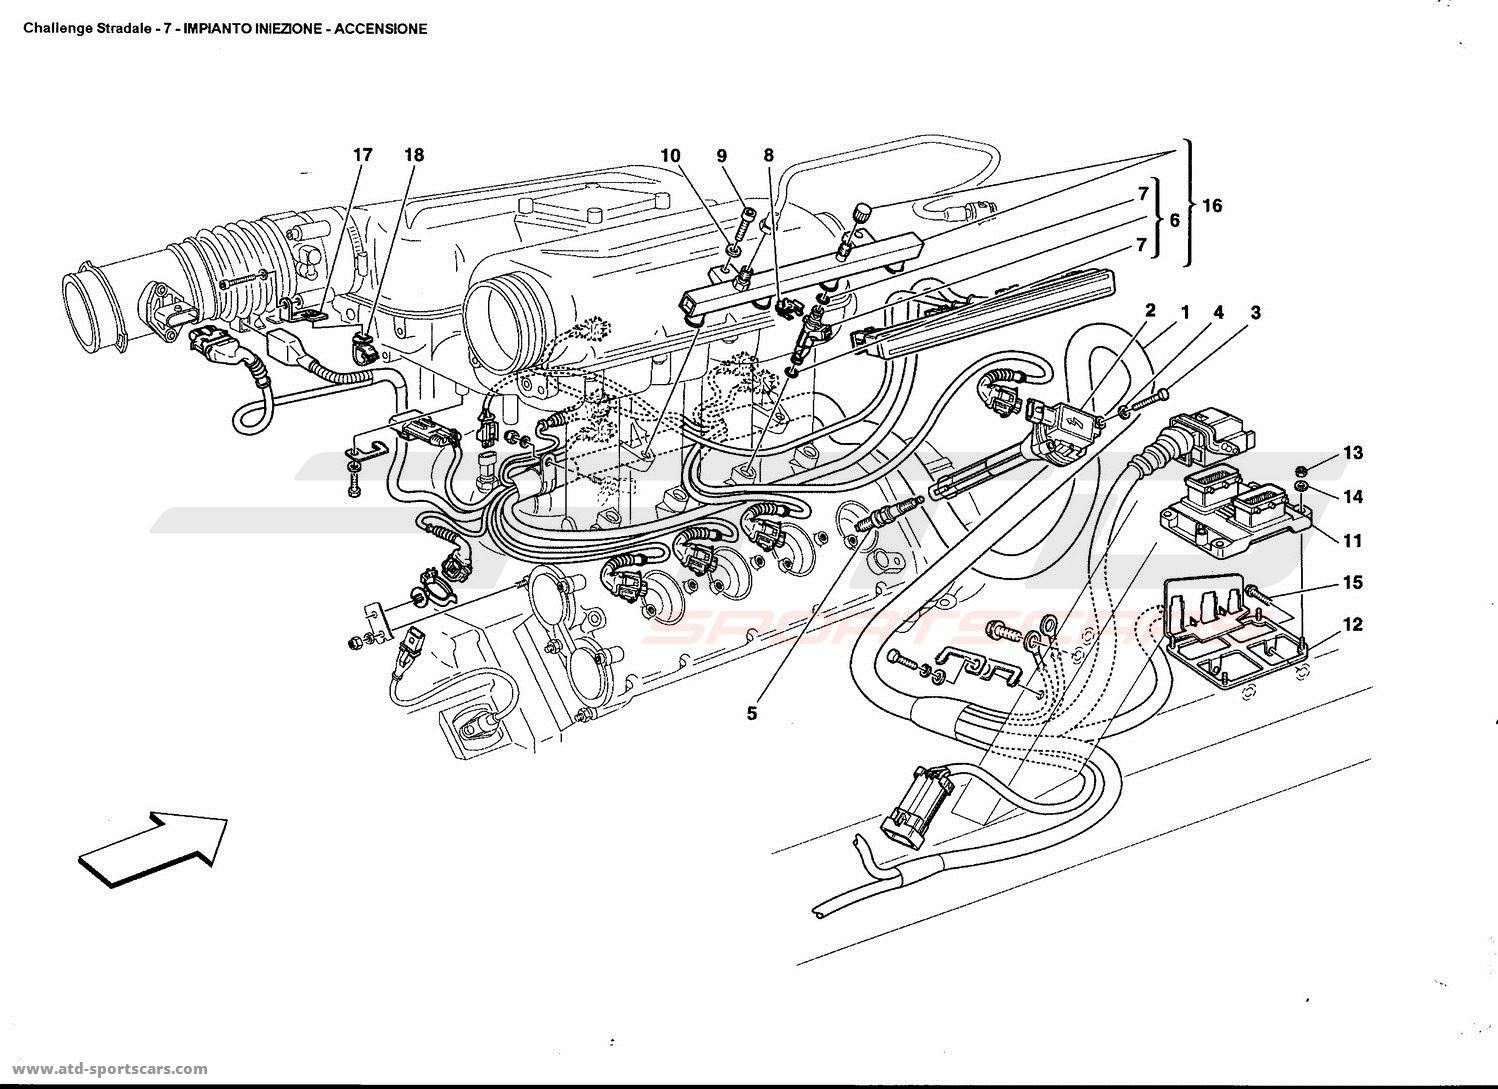 Ferrari 360 Challenge stradale Electrical parts at ATD